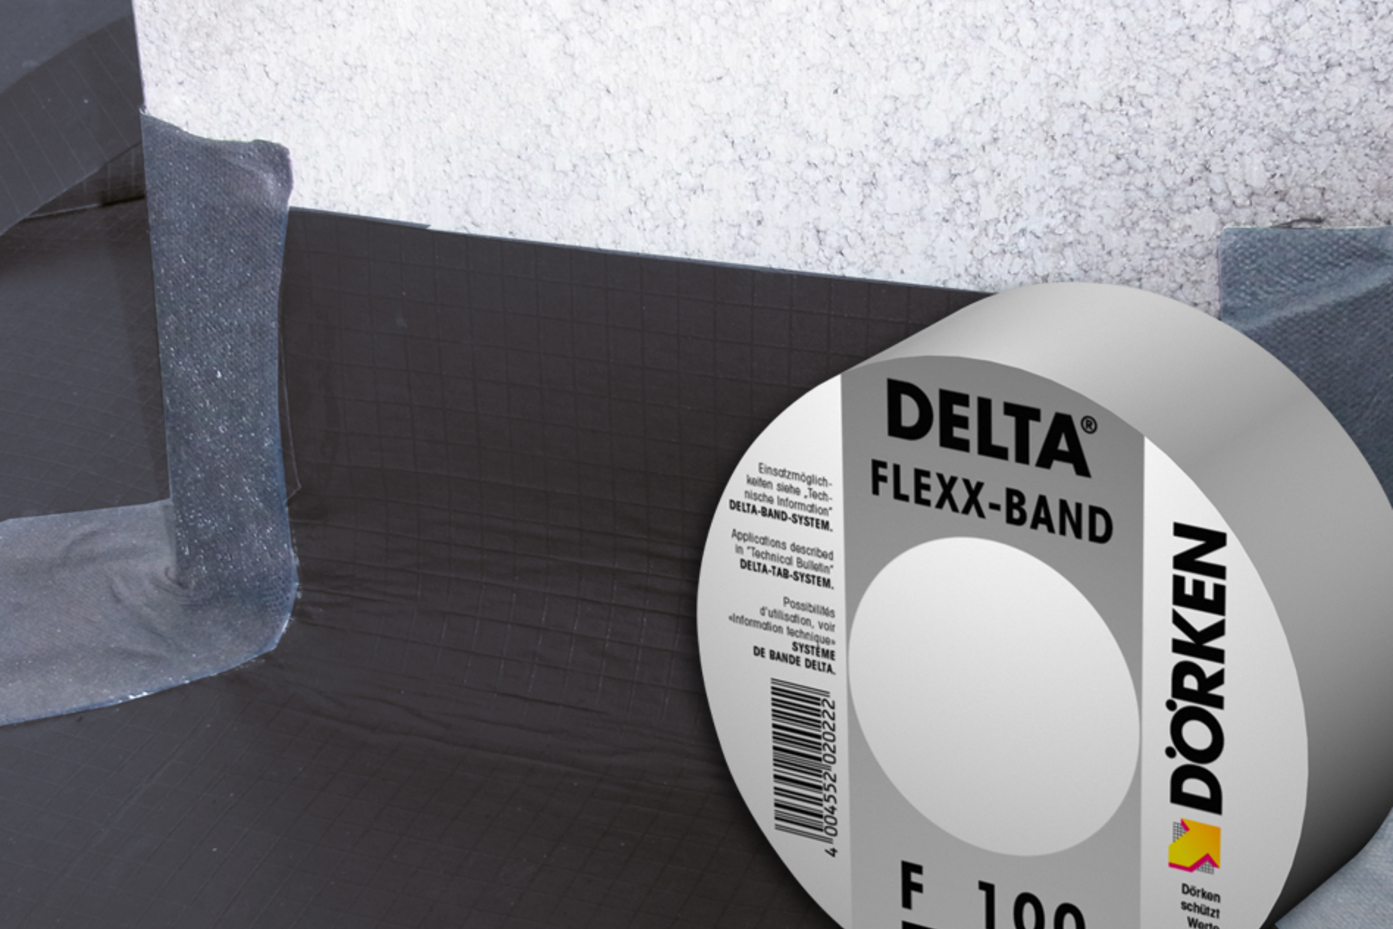 DELTA®-FLEXX BAND